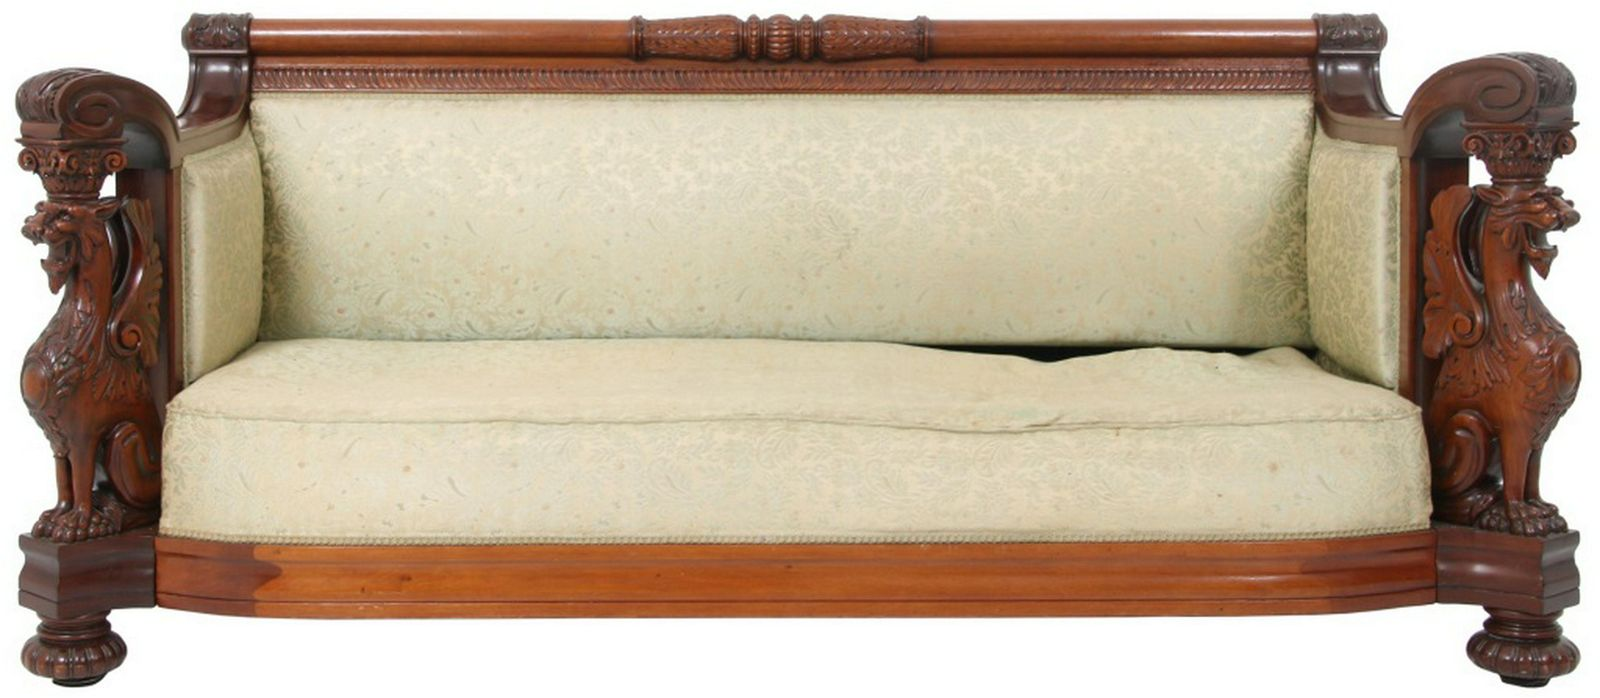 R J Horner Carved Mahogany Griffin Sofa Sep 14 2019 Fontaine S Auction Gallery In Ma